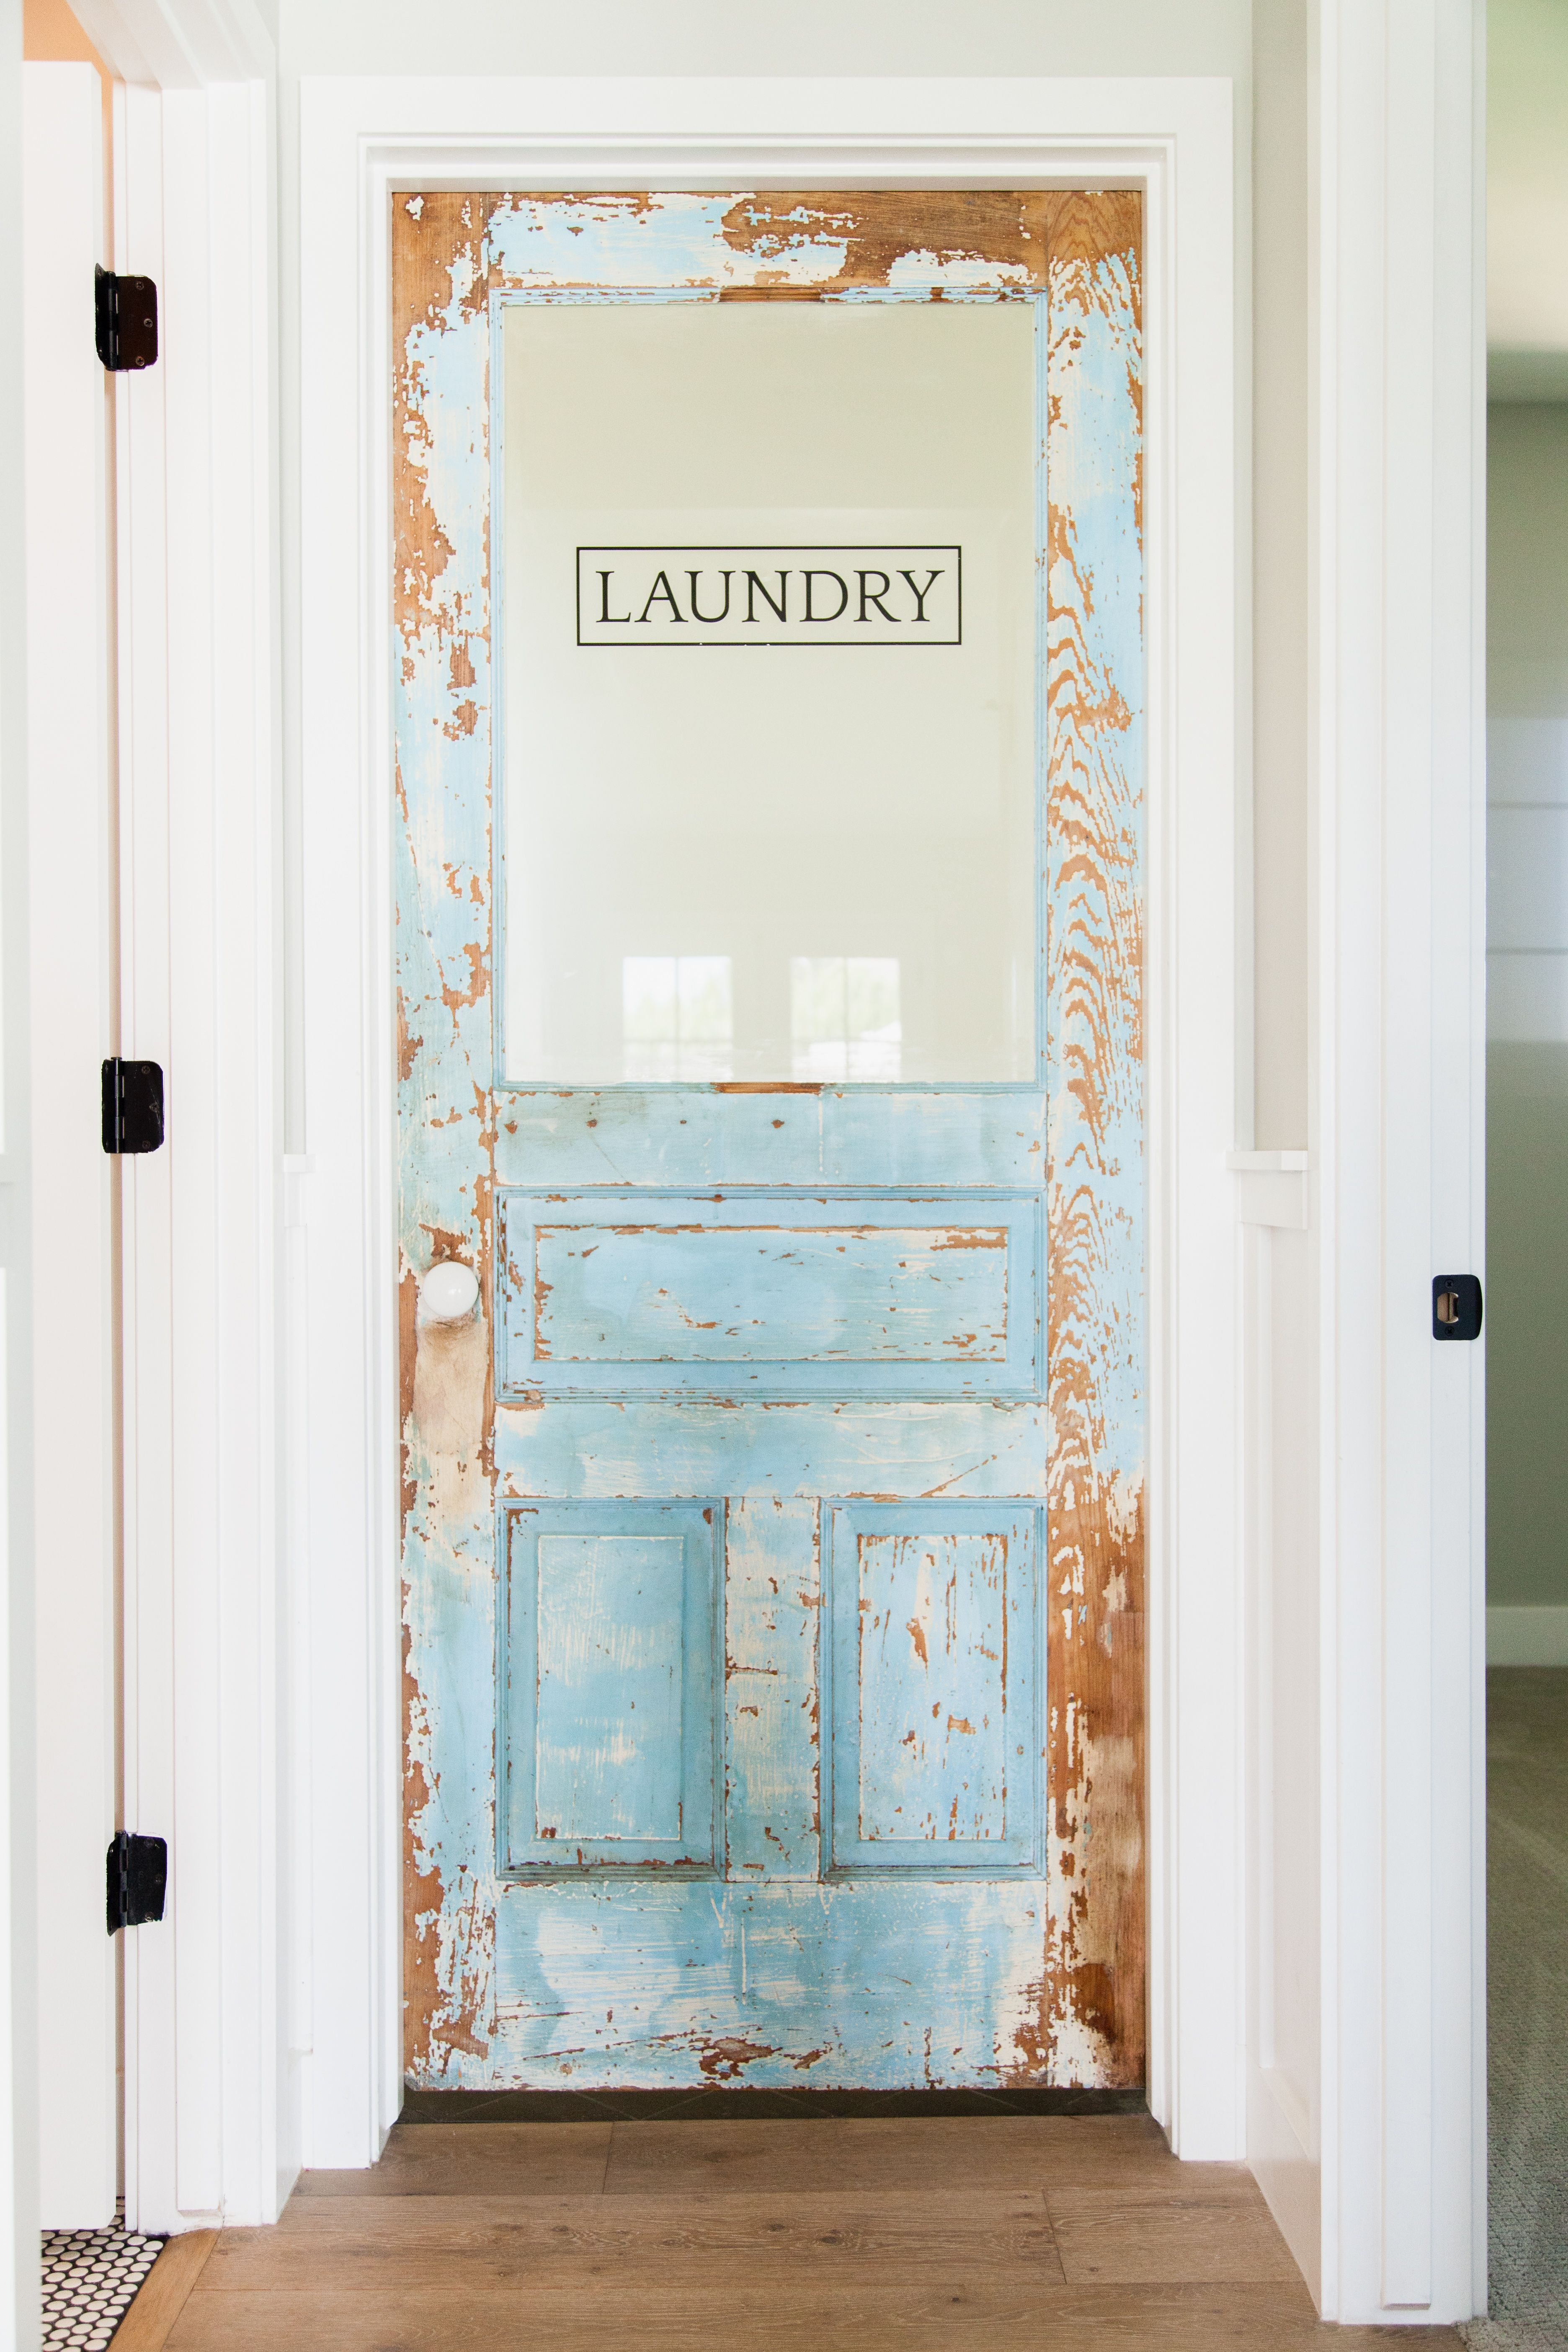 Delicieux Custom Laundry Door With Original Vintage Paint   By ...